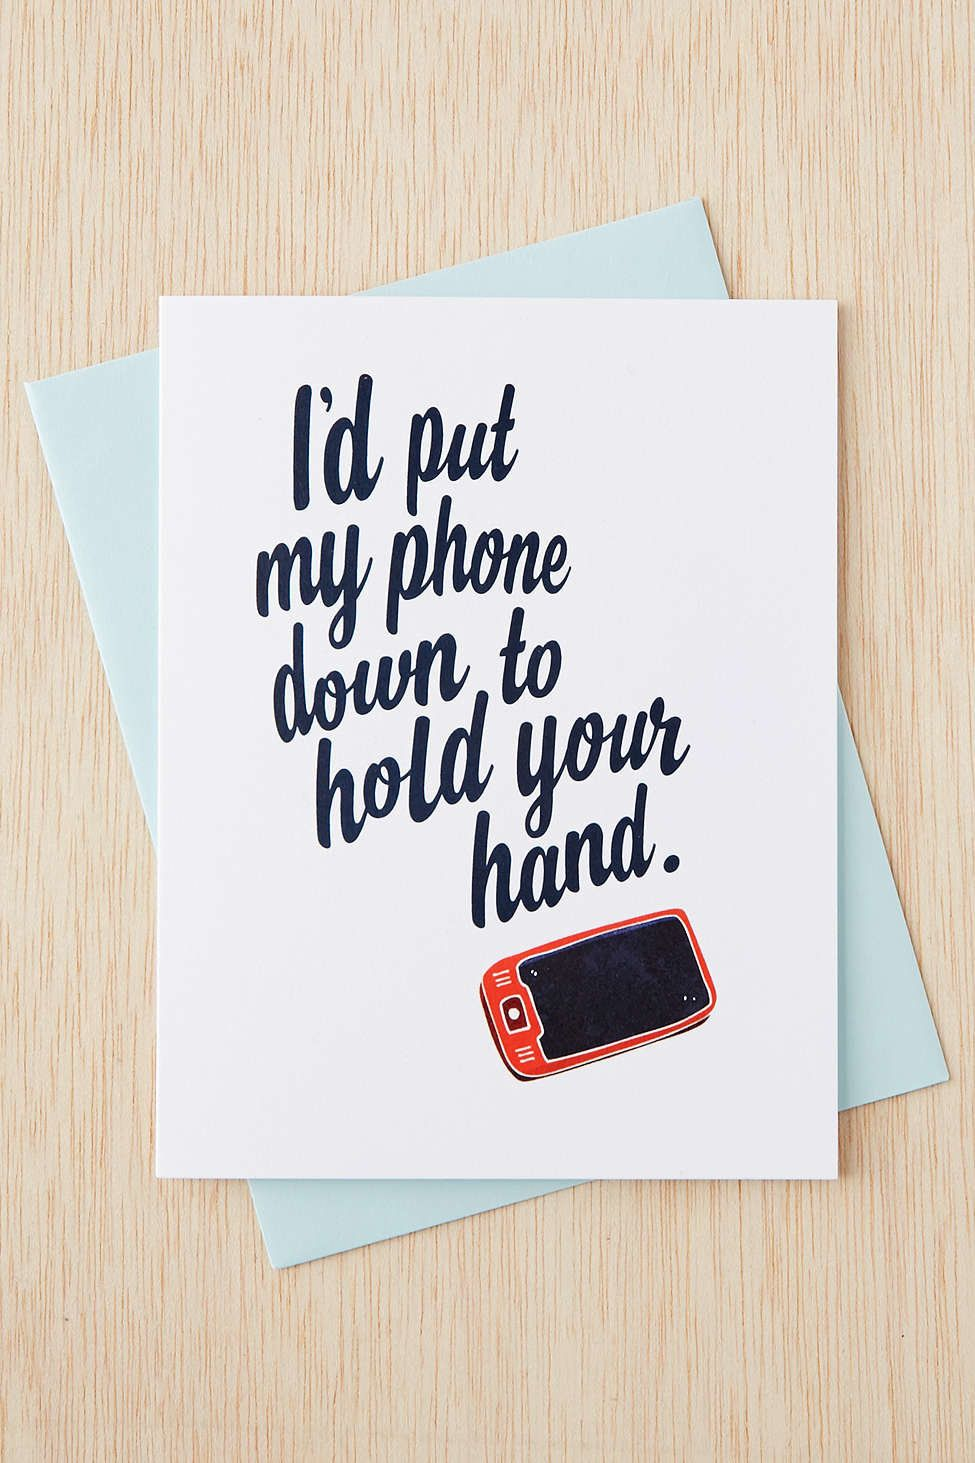 E Funny Cards Love Relationship